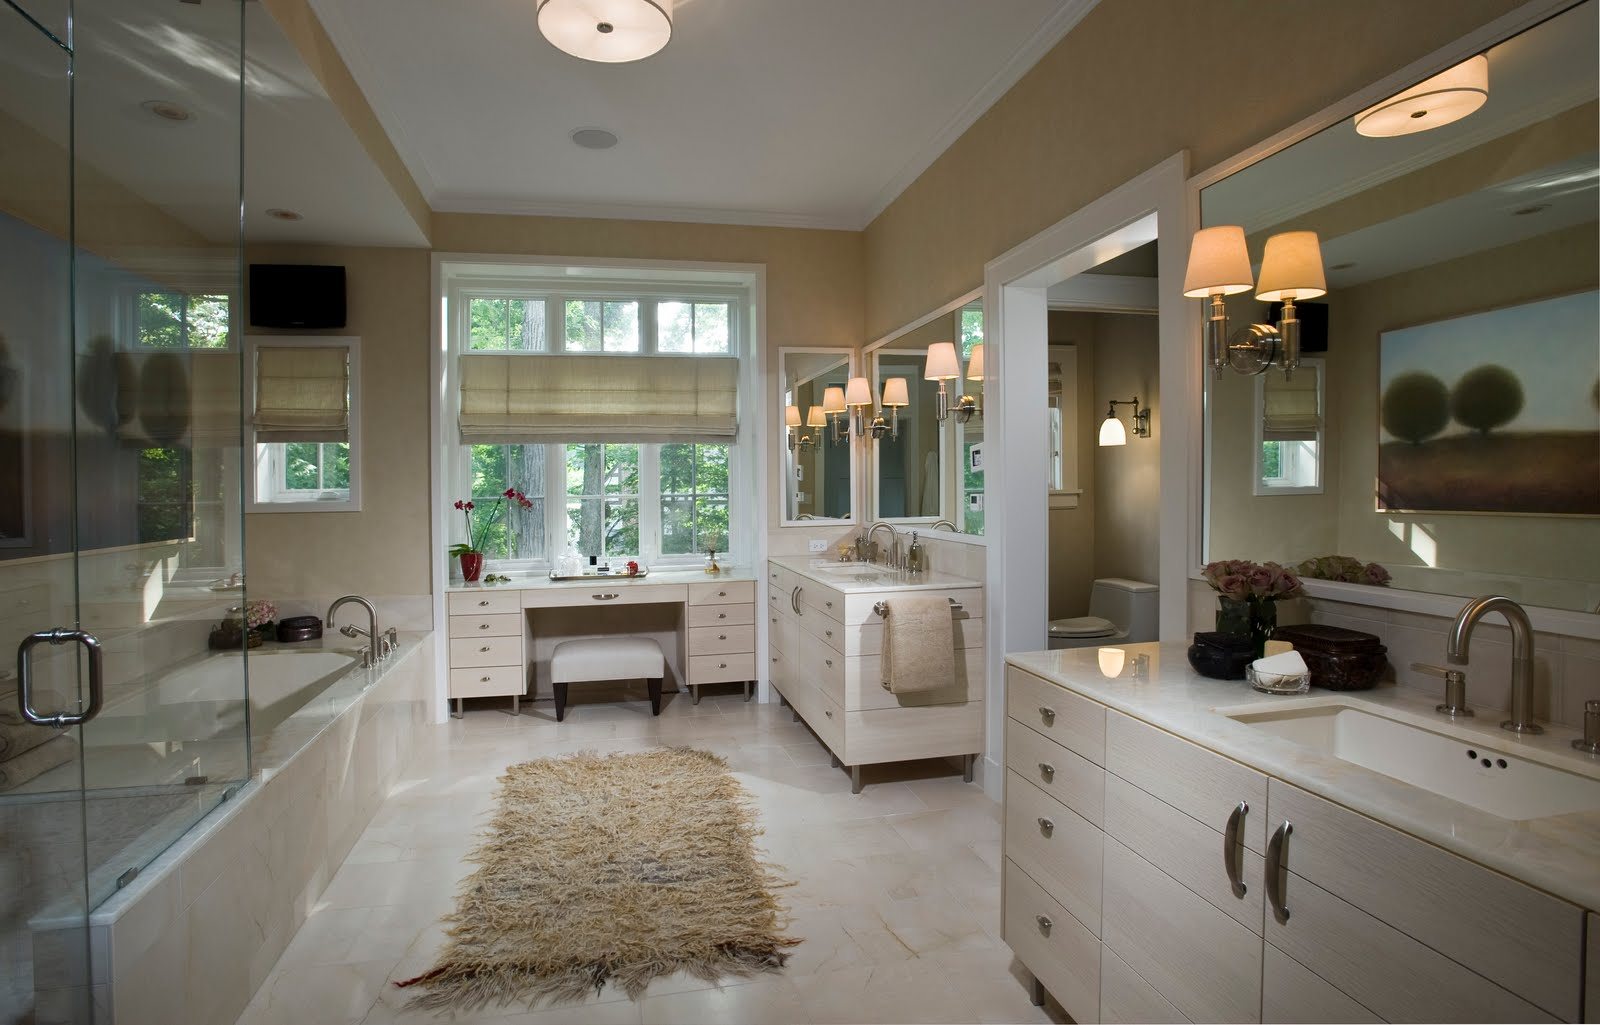 MOST BEAUTIFUL DESIGN FOR YOUR MASTER BATHROOM